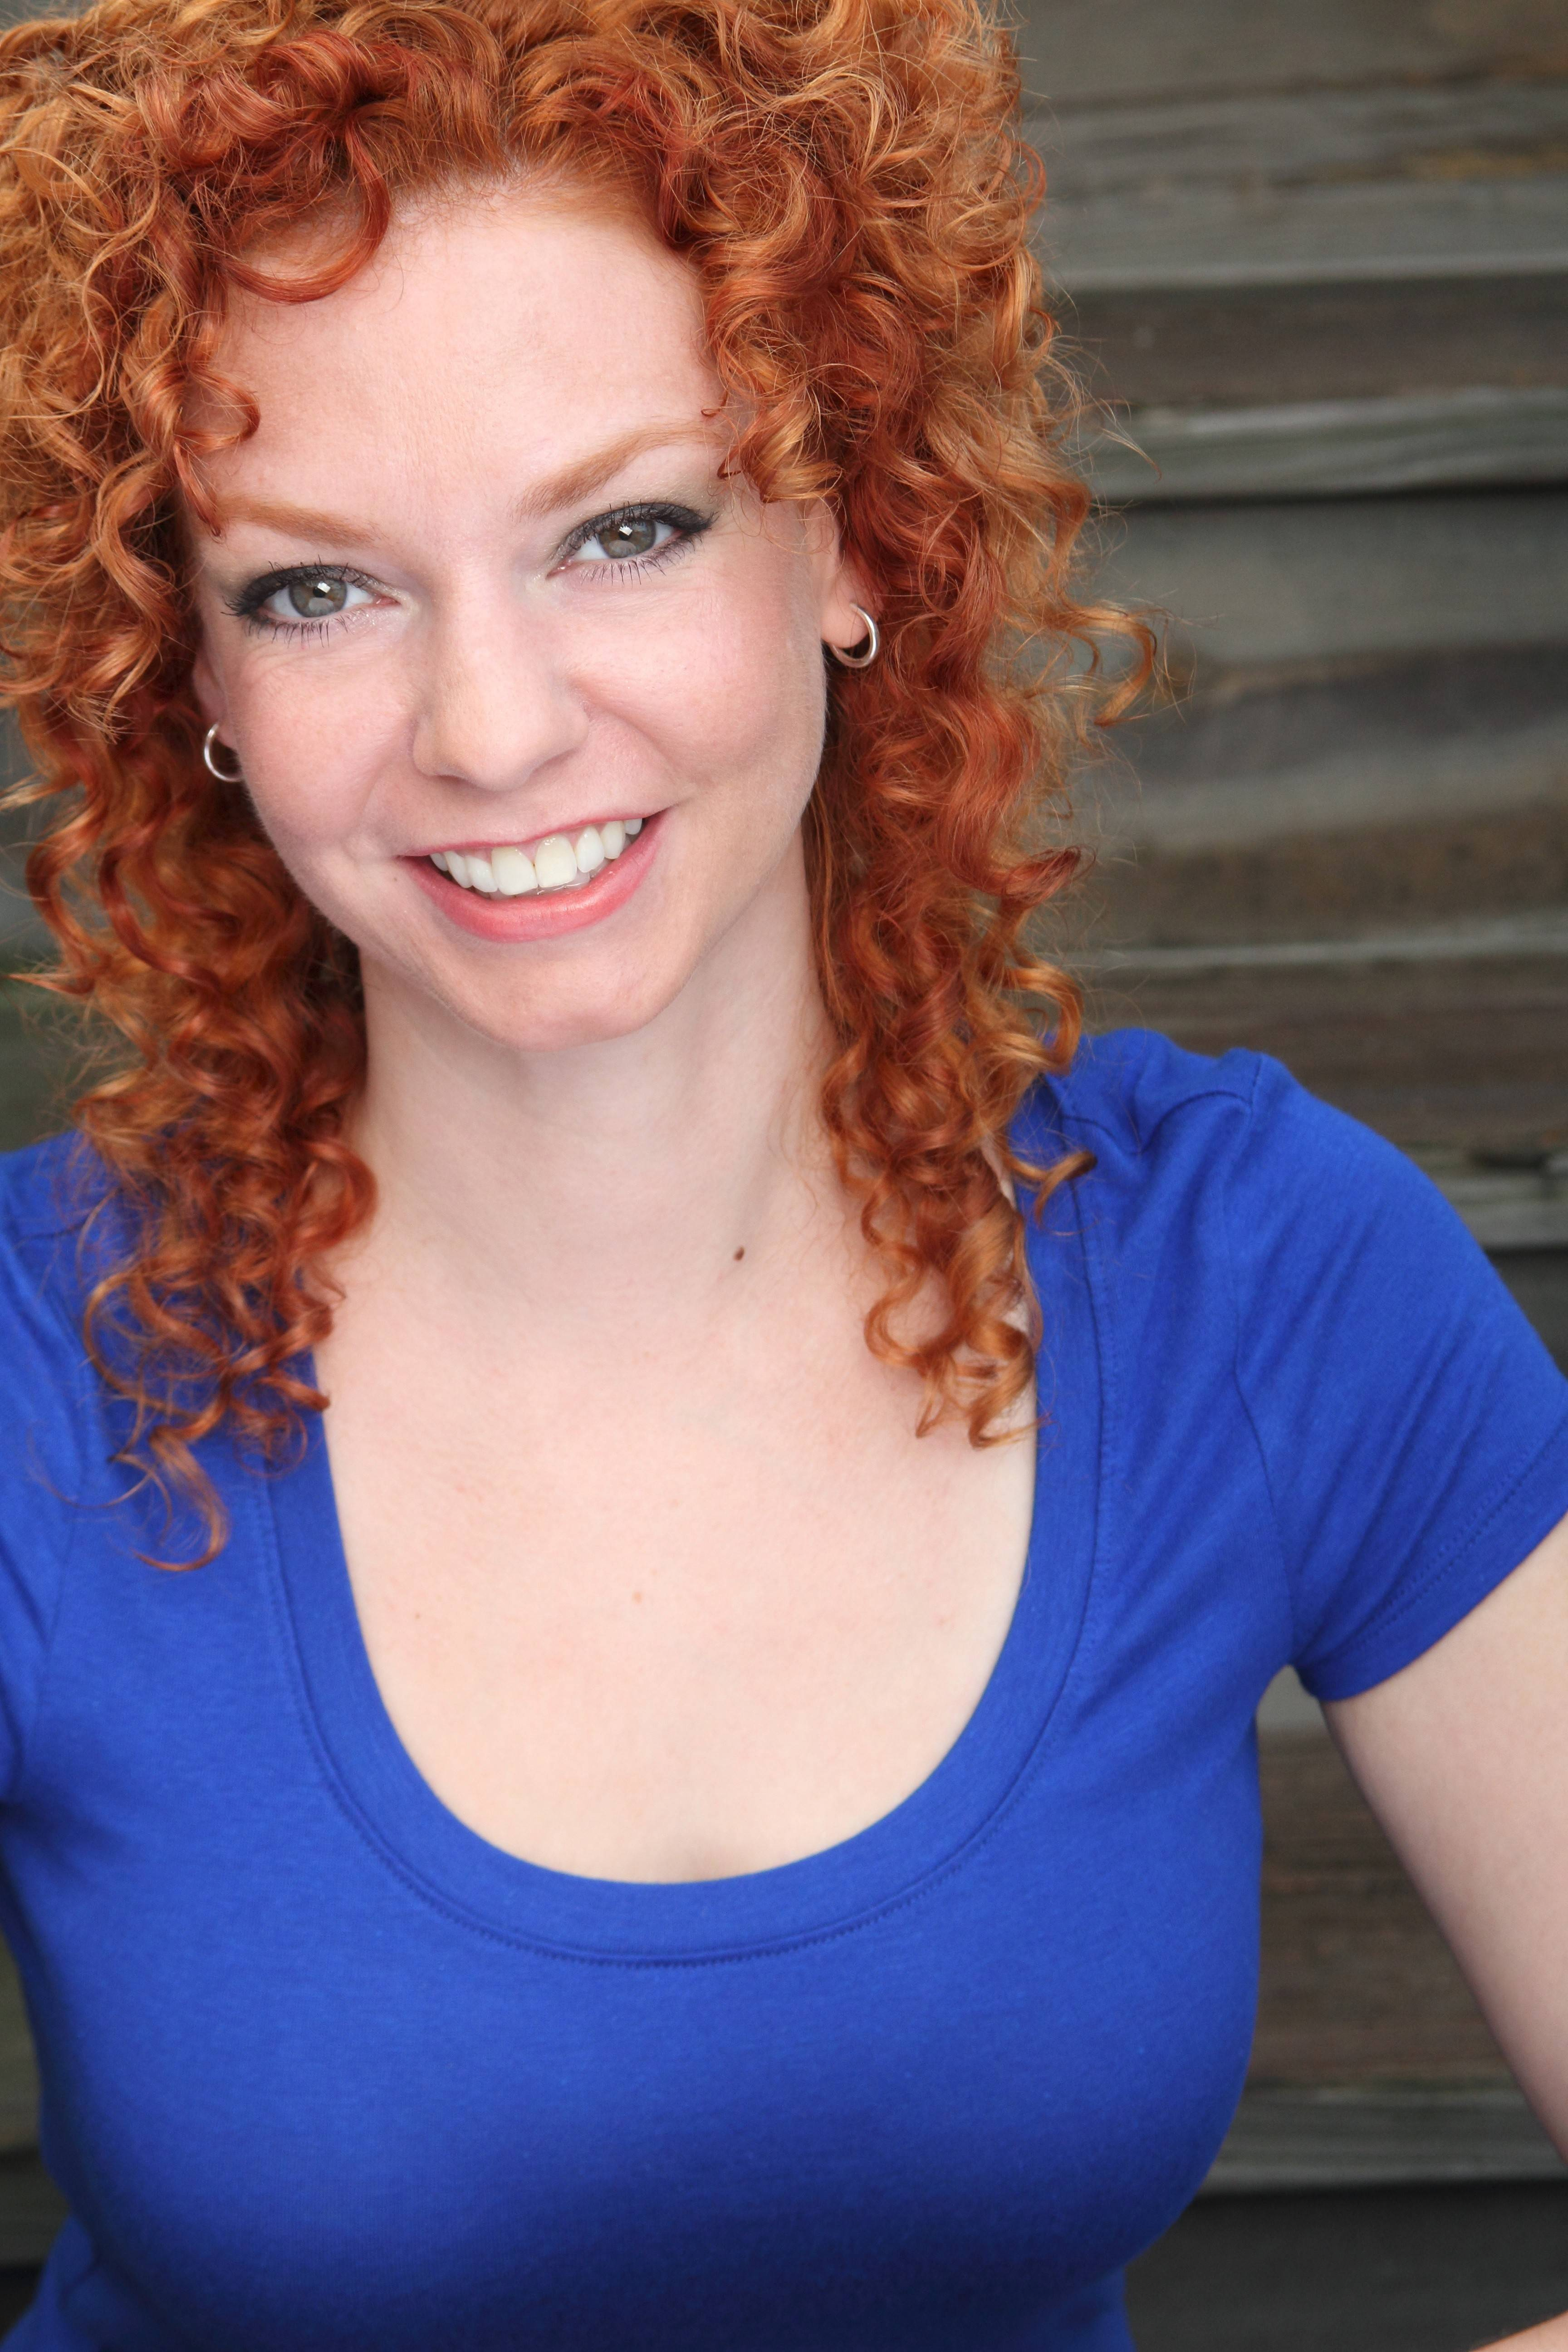 Naperville native and actress Colleen Miller credits her curly hair as one of her assets.